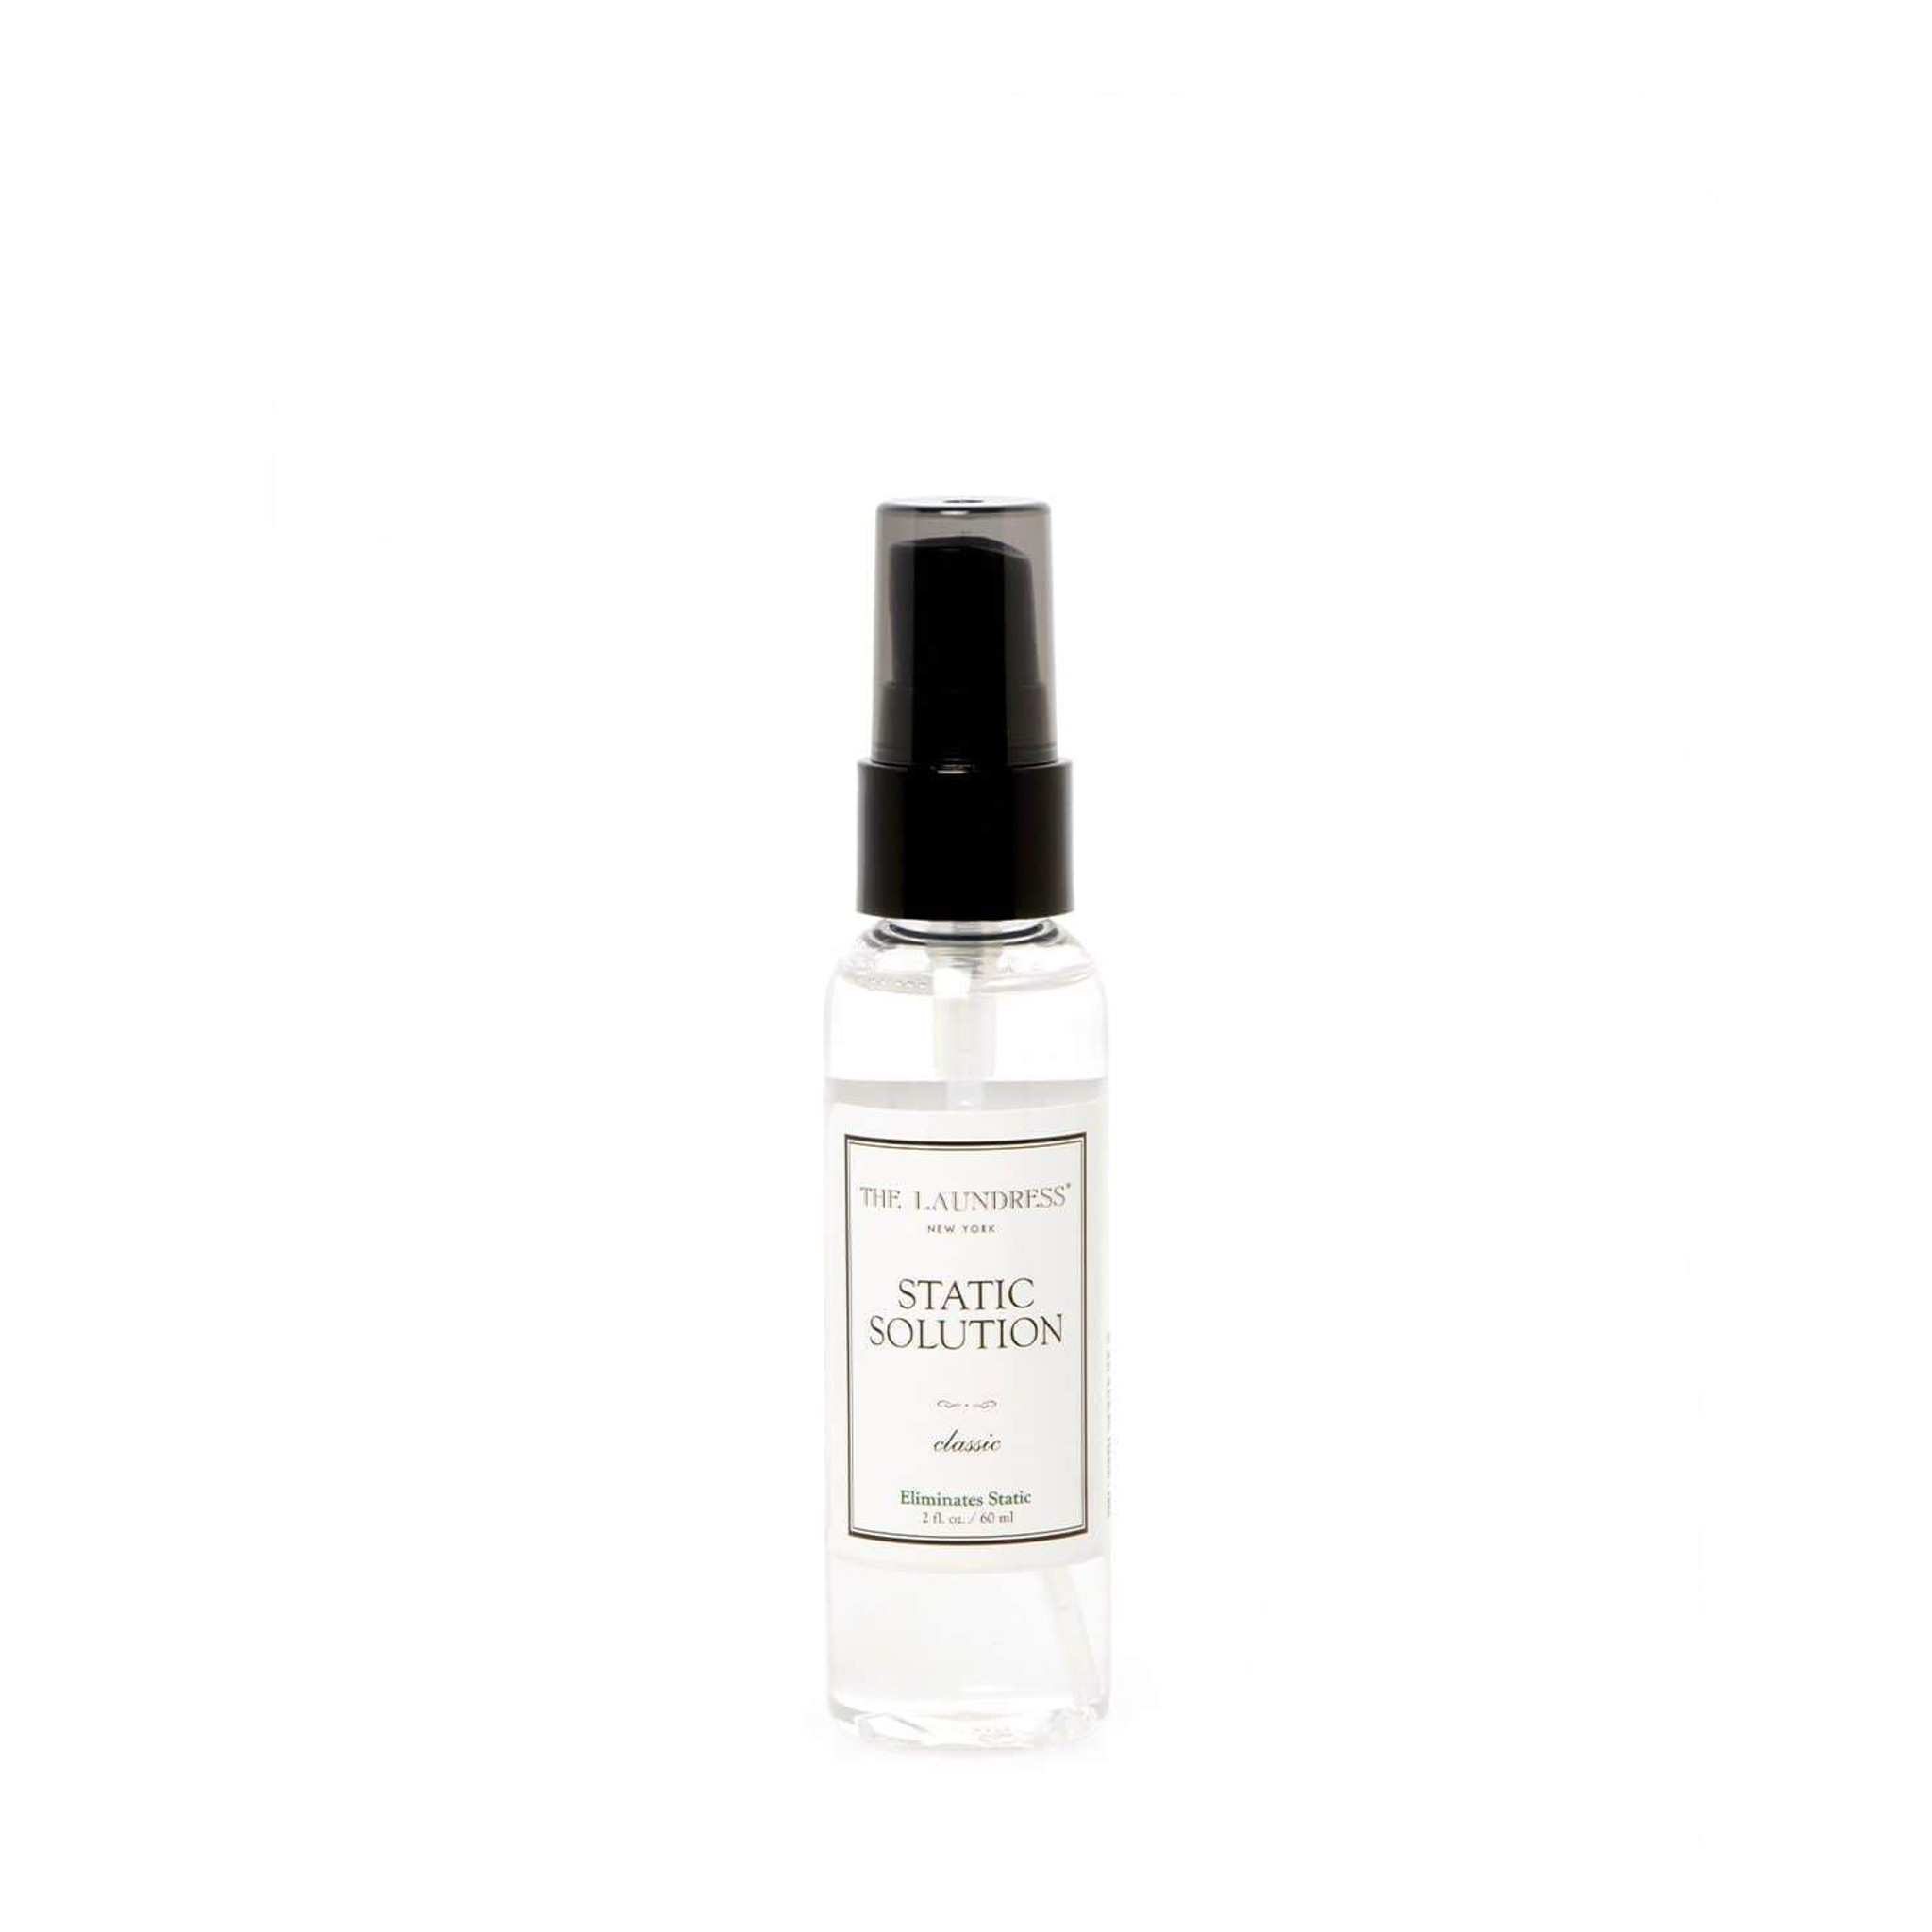 The Laundress - Static Solution 60ml